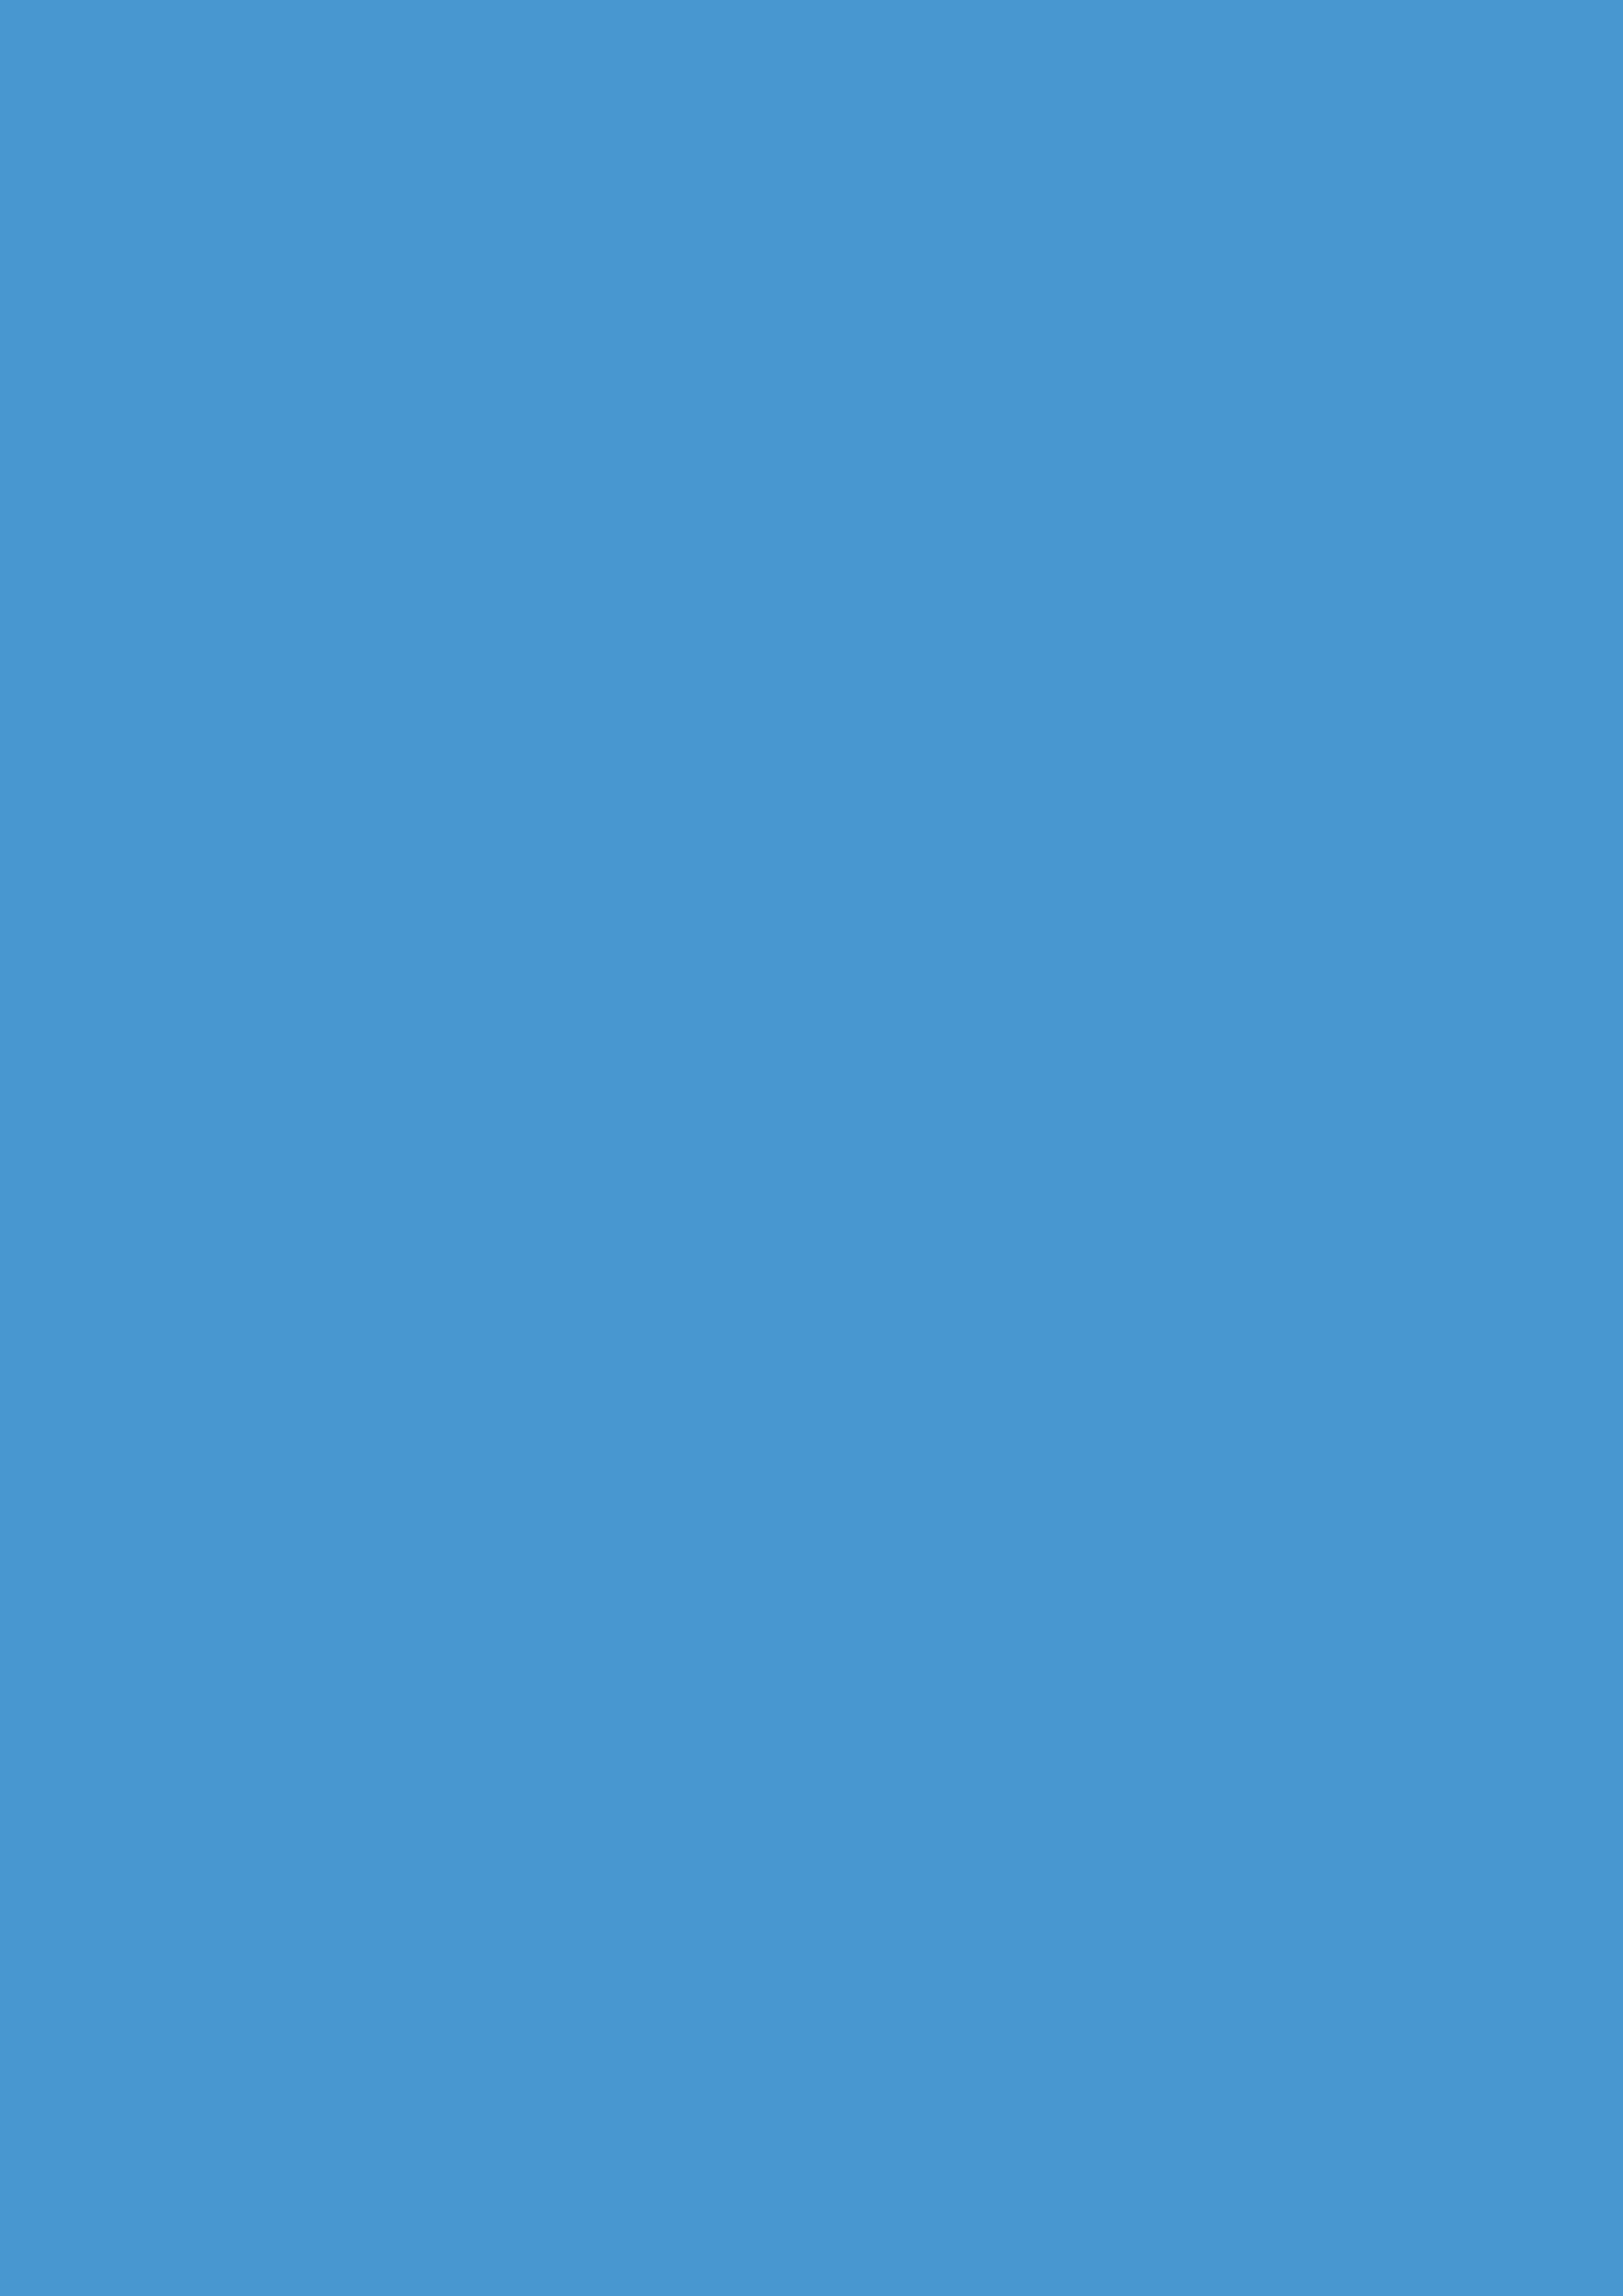 2480x3508 Celestial Blue Solid Color Background